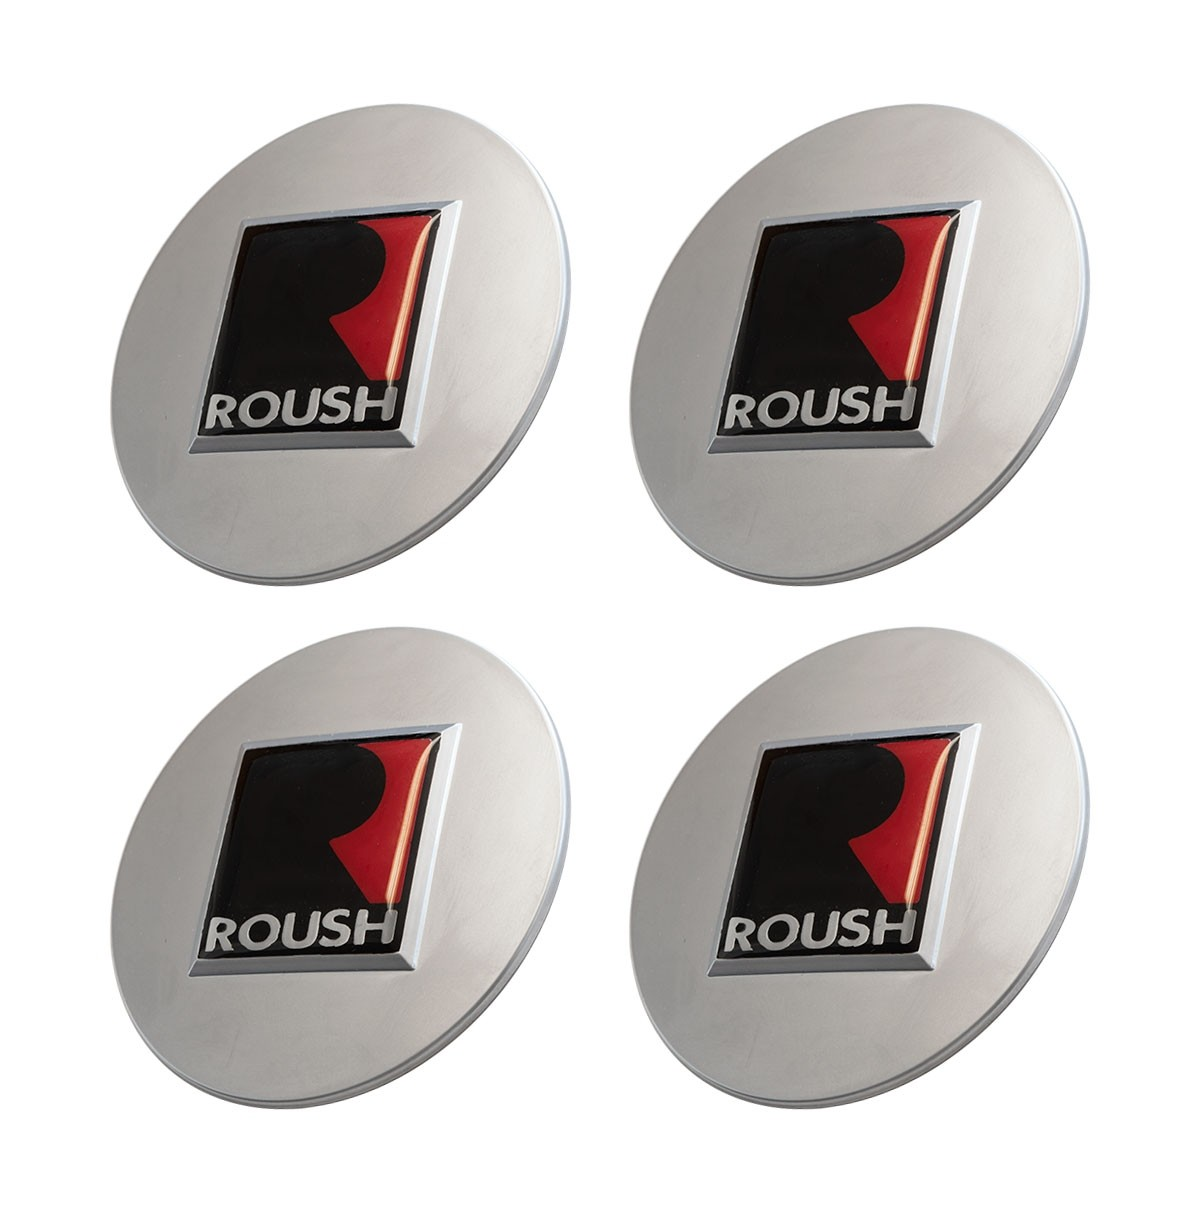 """1994-2020 Ford Mustang 2.5"""" Roush R Silver Wheel Center Caps Set of 4"""